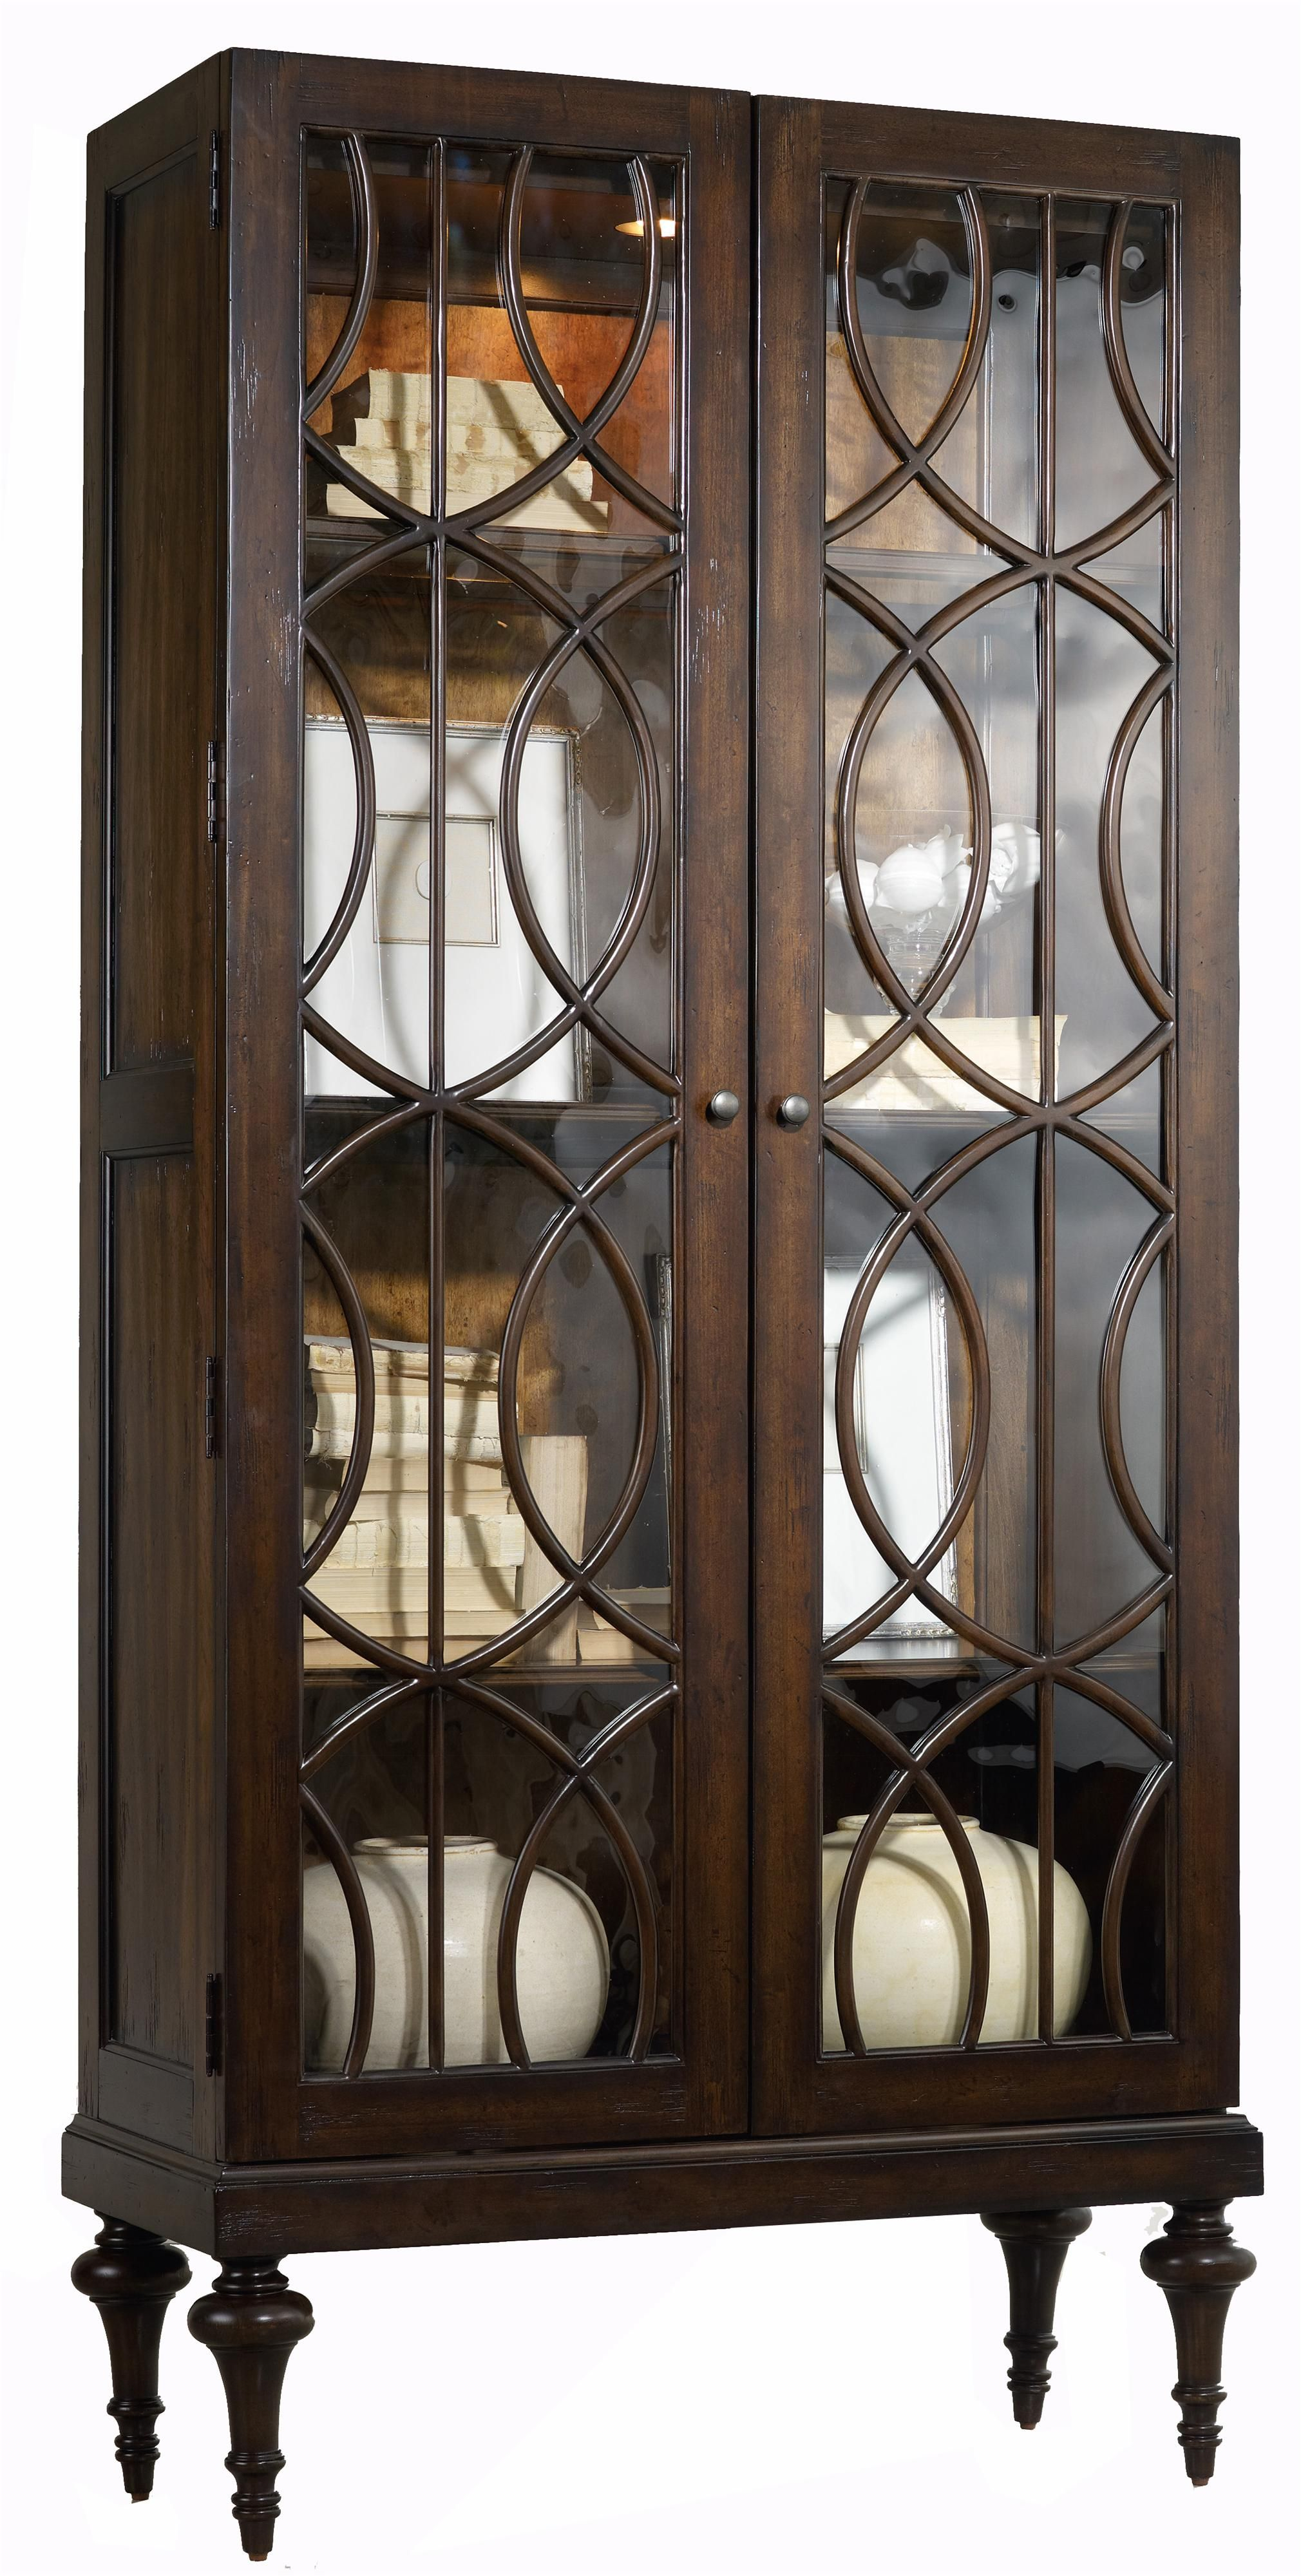 Mélange Adaira Display Cabinet with Concentric Circle Wood Trim by ...